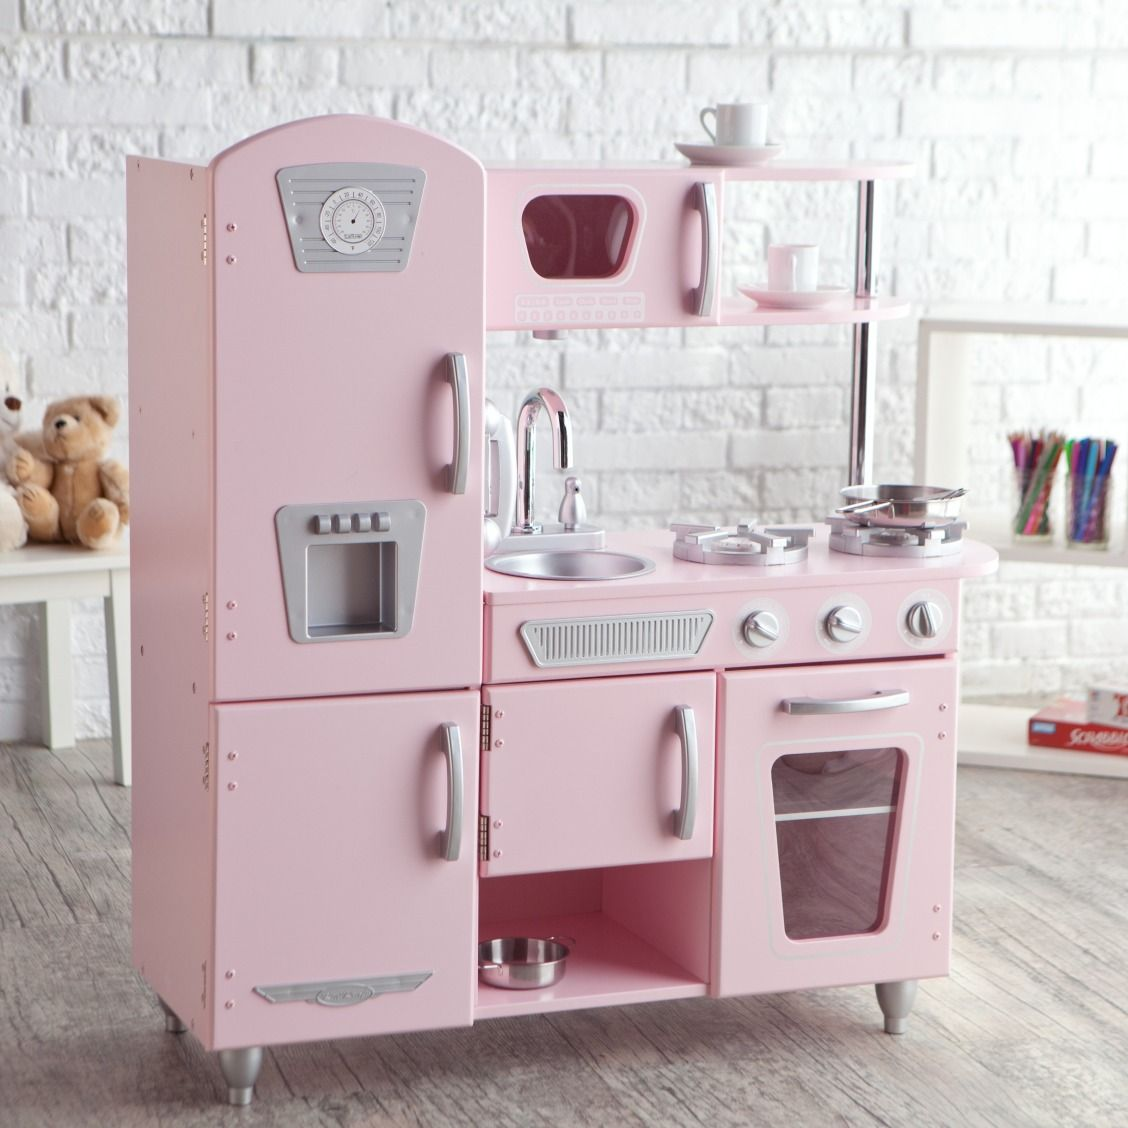 Kidkraft Toy Kitchen Appliance Bundle Pink Vintage Gifts For The Kids Play